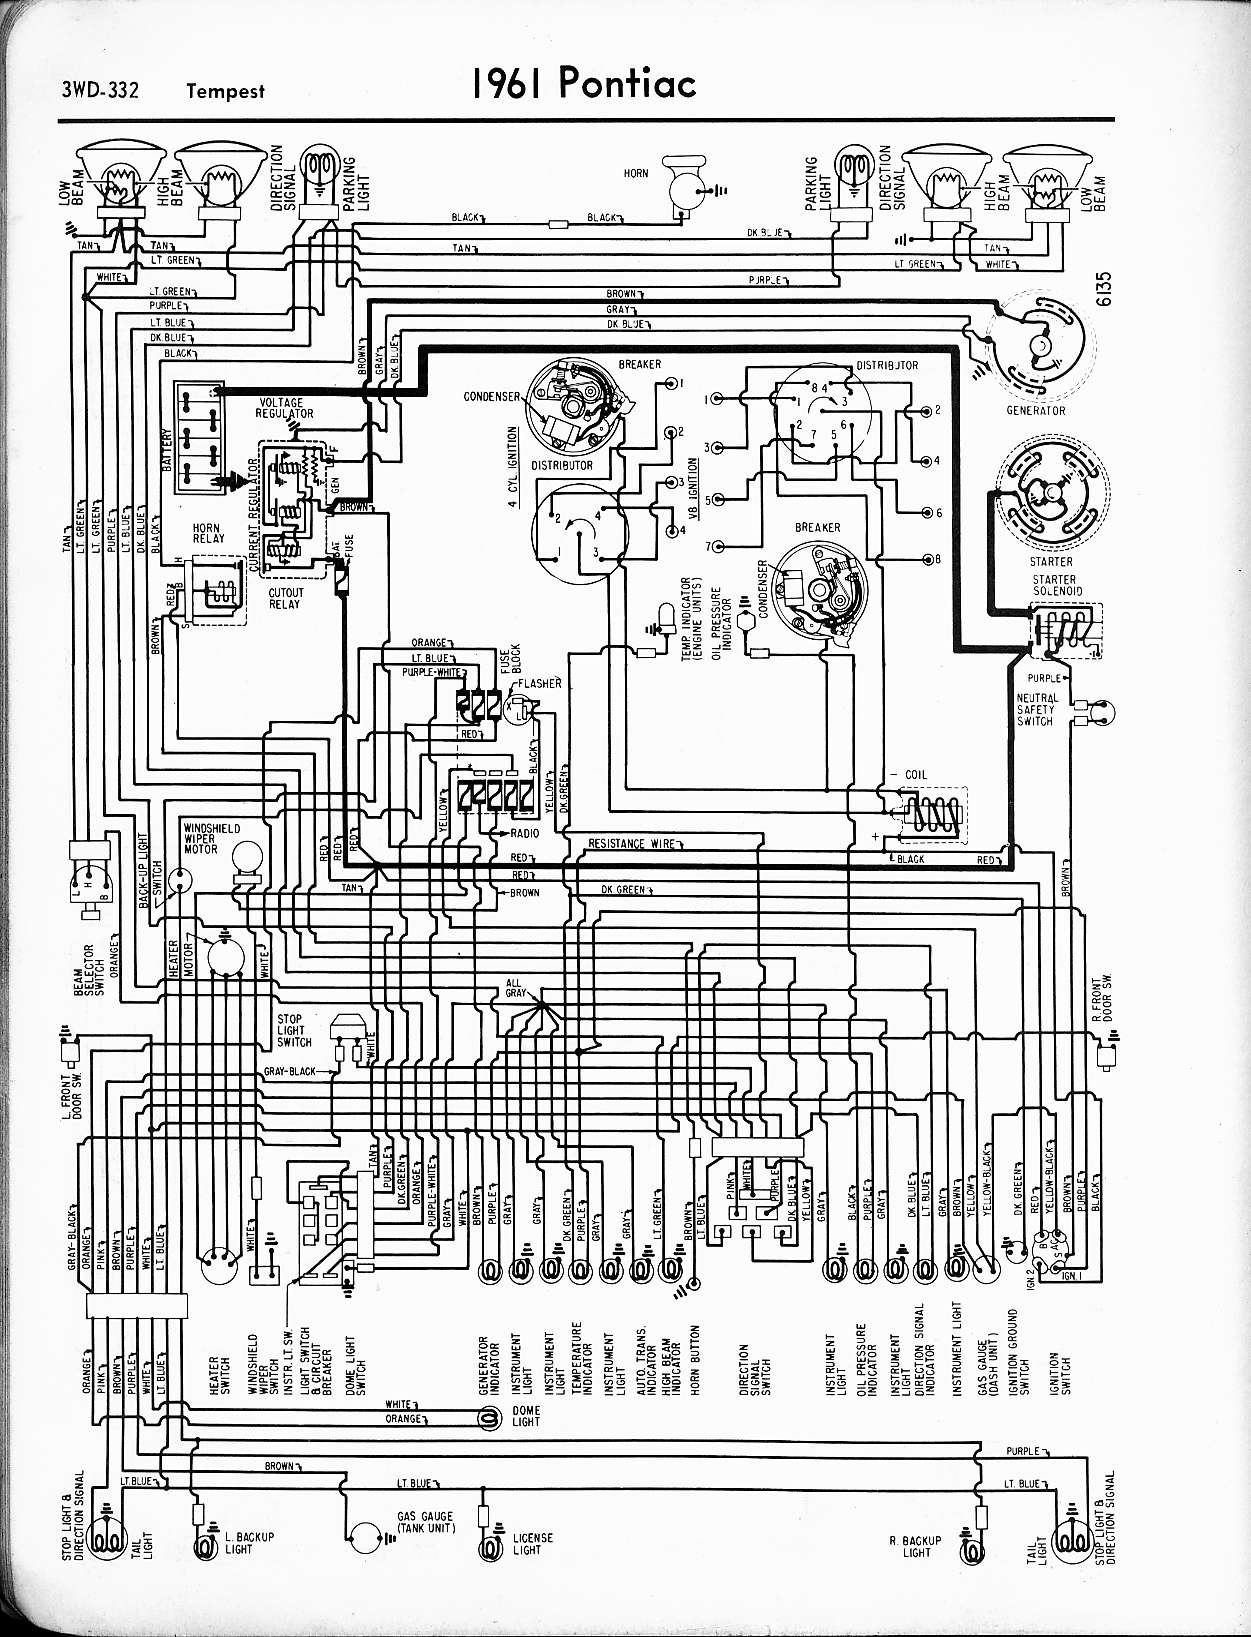 1977 pontiac radio wiring custom wiring diagram u2022 rh littlewaves co